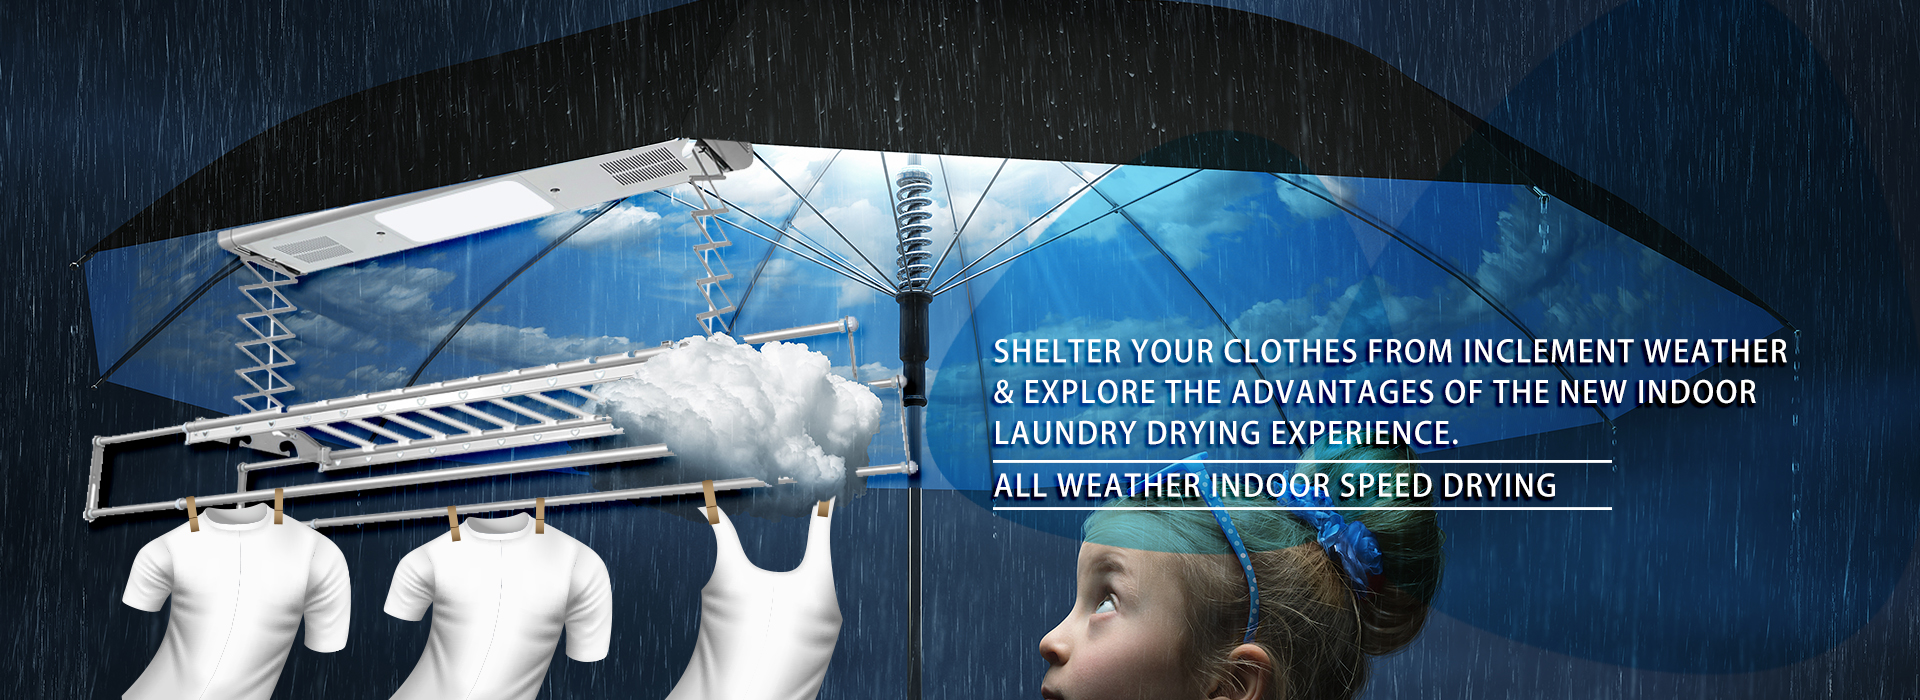 mensch - all weather indoor speed drying laundry system